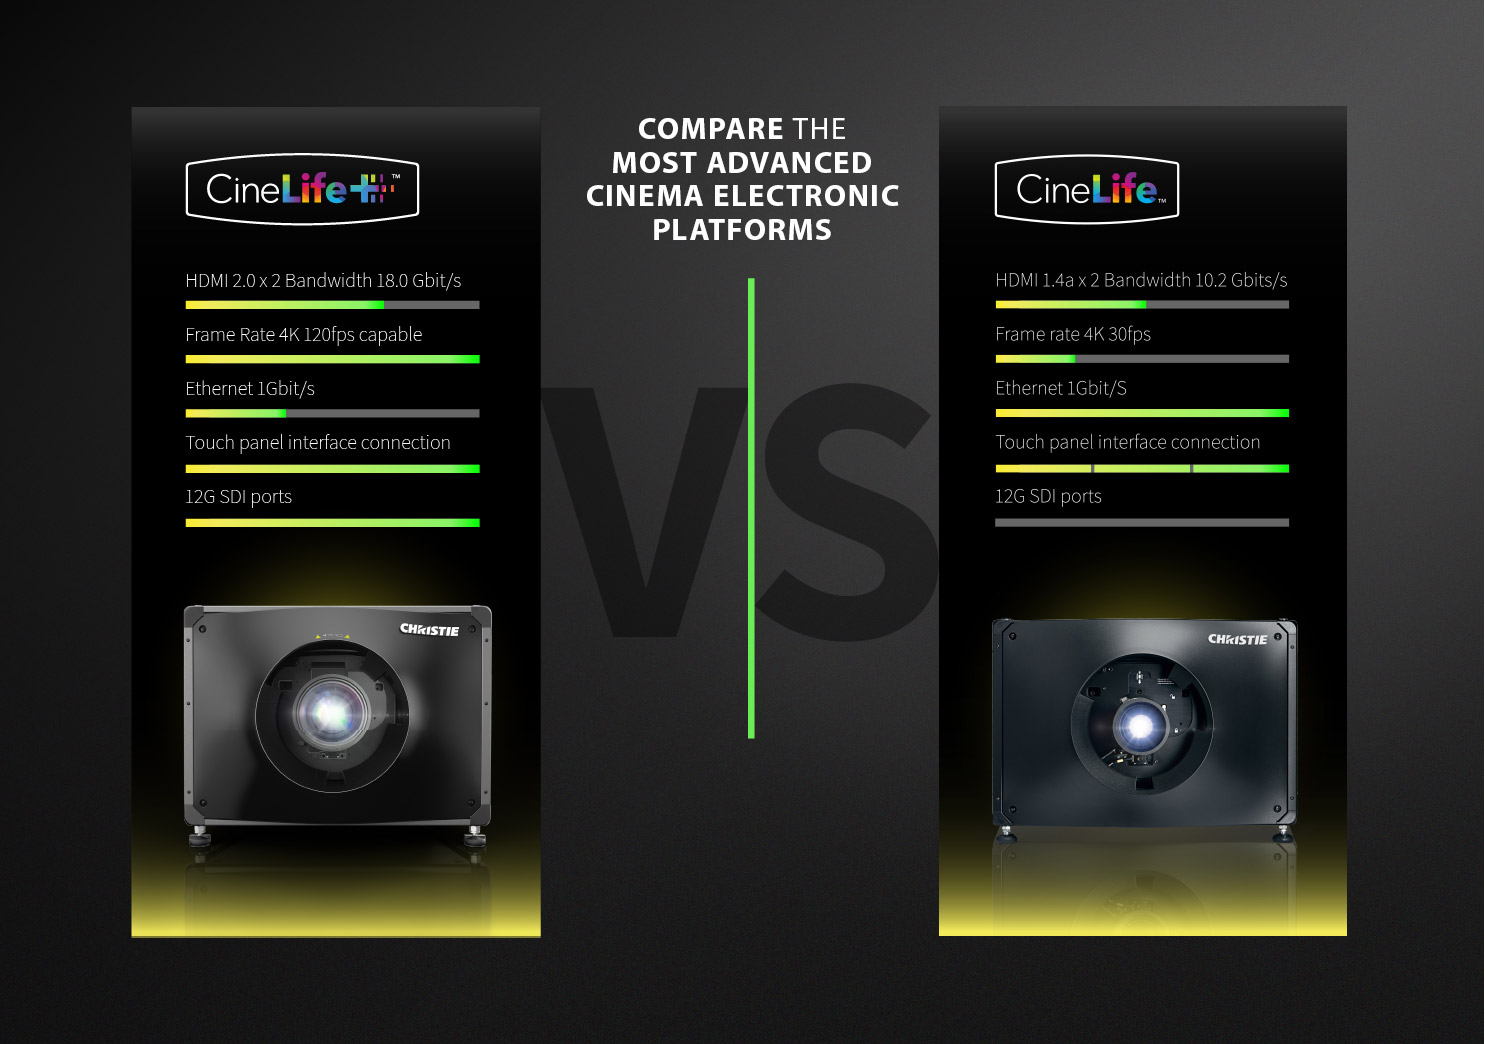 Compare the most advanced cinema electronics platforms